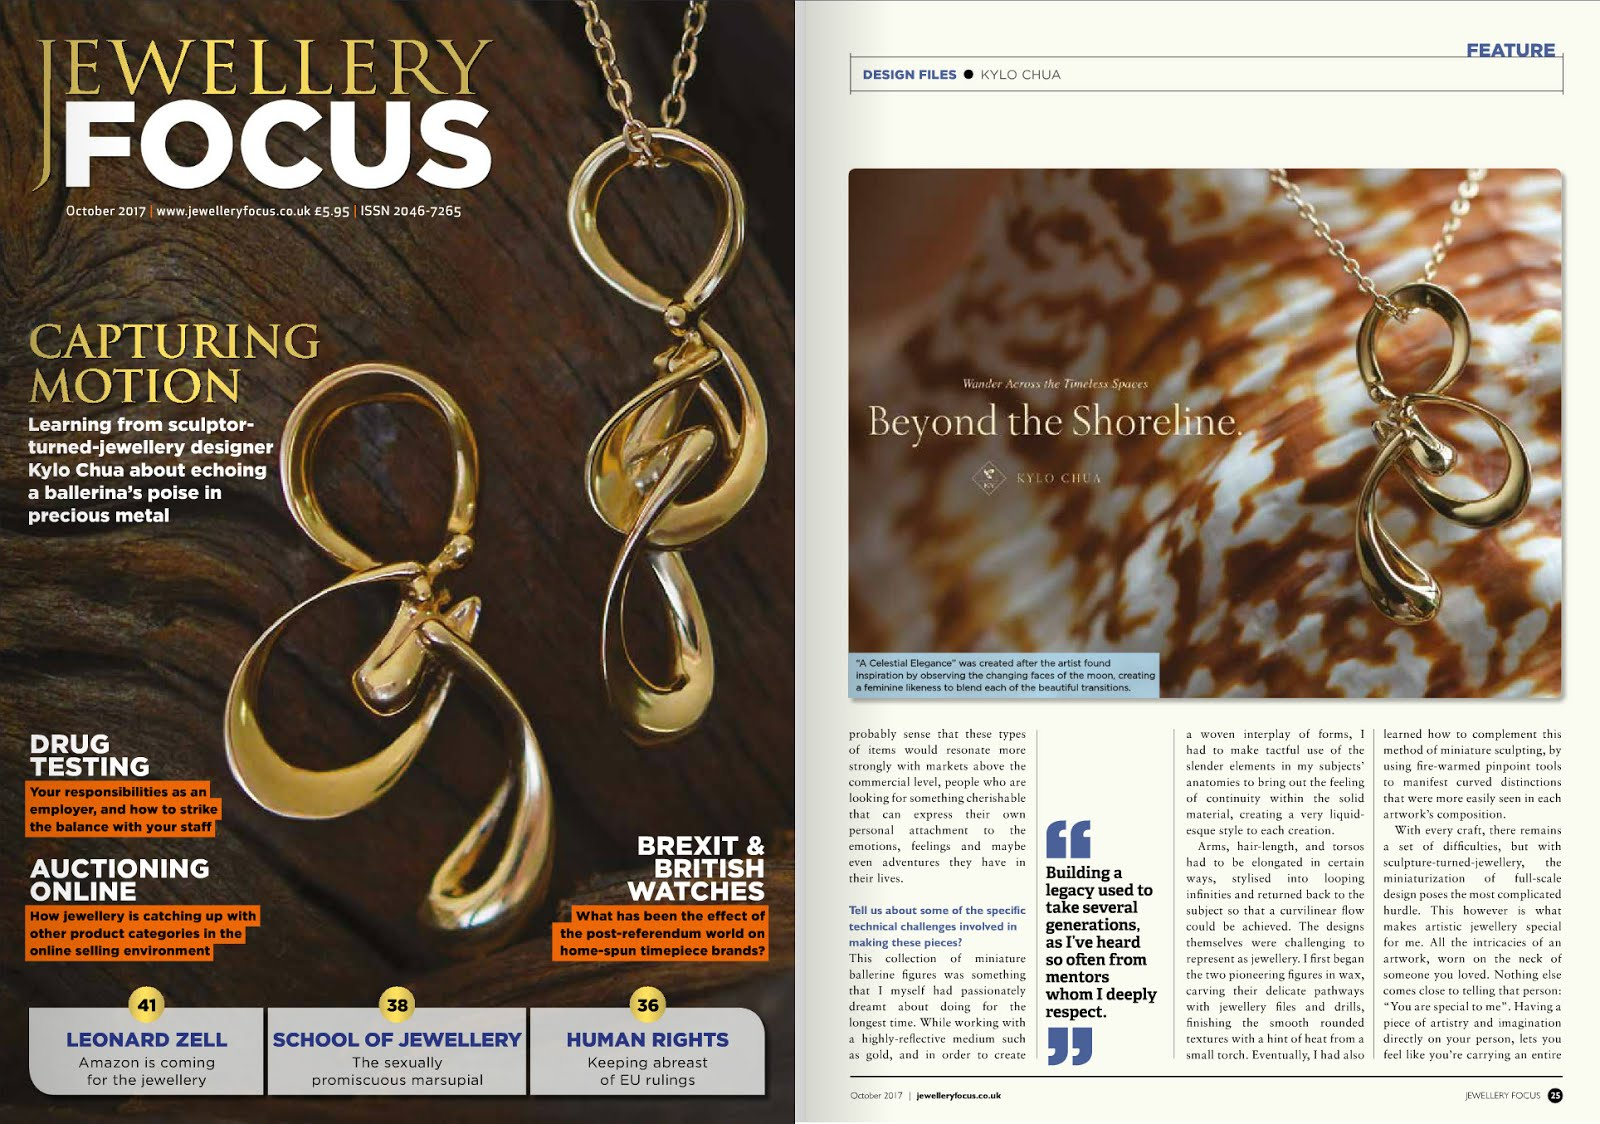 Cover Spotlight on Jewellery Focus Magazine, London, UK | October 2017